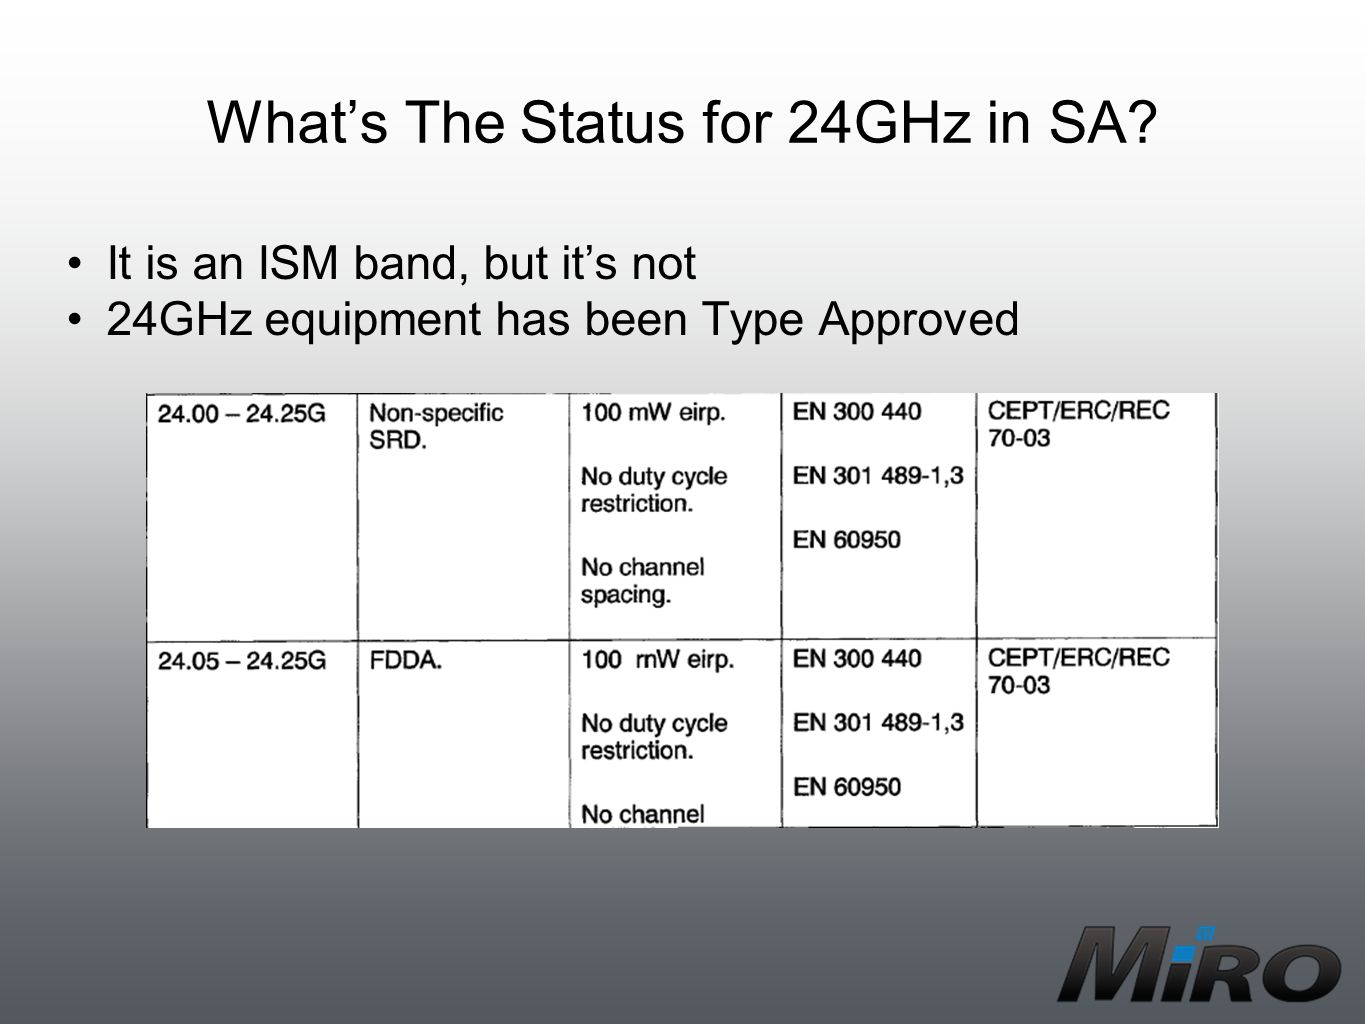 What's The Status for 24GHz in SA? It is an ISM band, but it's not 24GHz equipment has been Type Approved